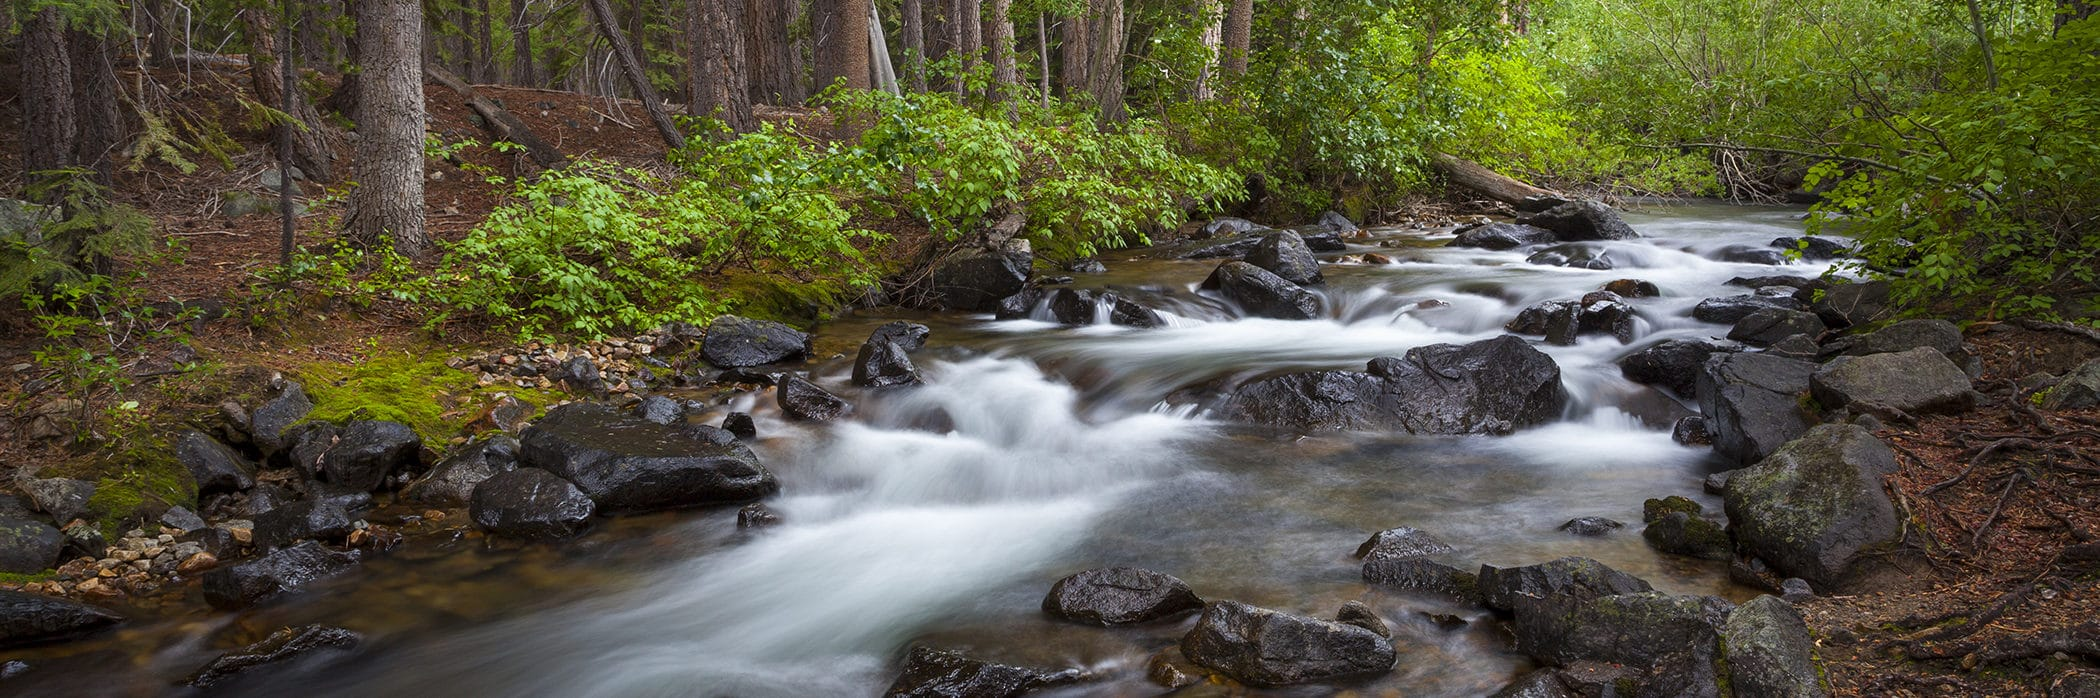 Water rushing over dark wet rocks in a creek with vibrant green vegetation surrounding the streambank and large tree stumps and pine needles along the sides.